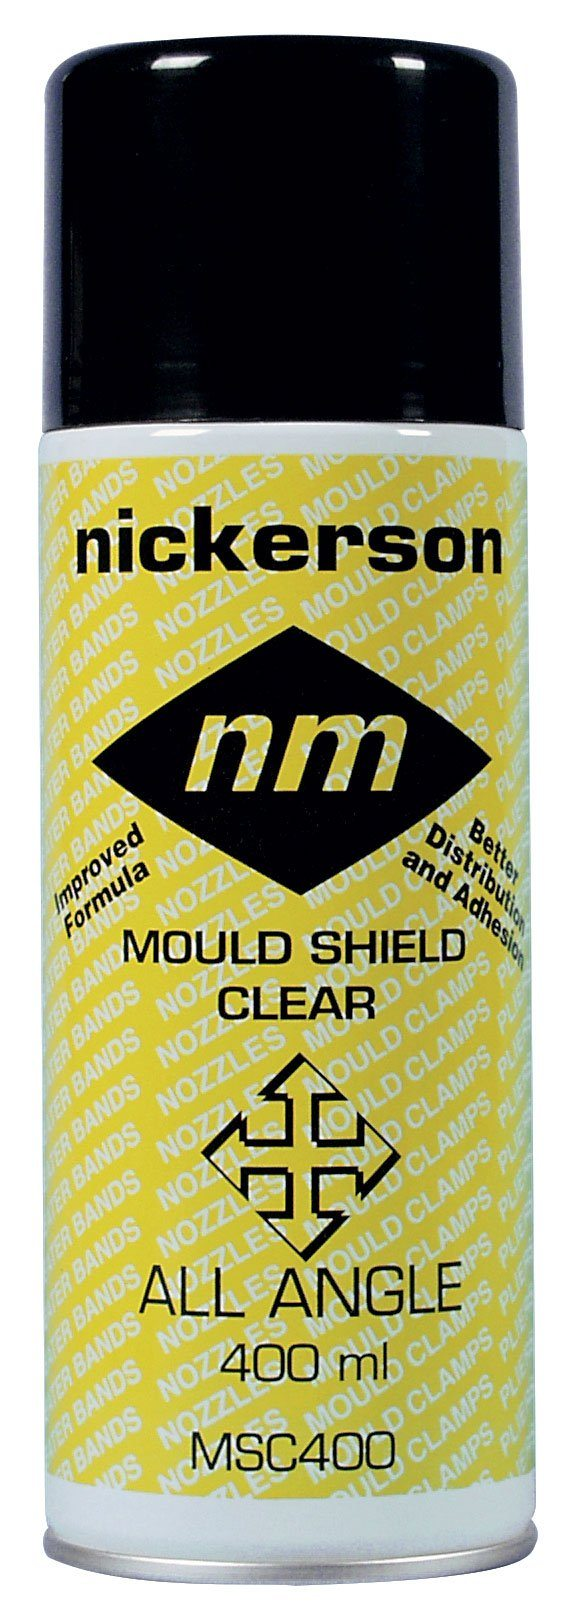 Mould_Sprays_and_lubricants - Mould Shield (CLEAR)